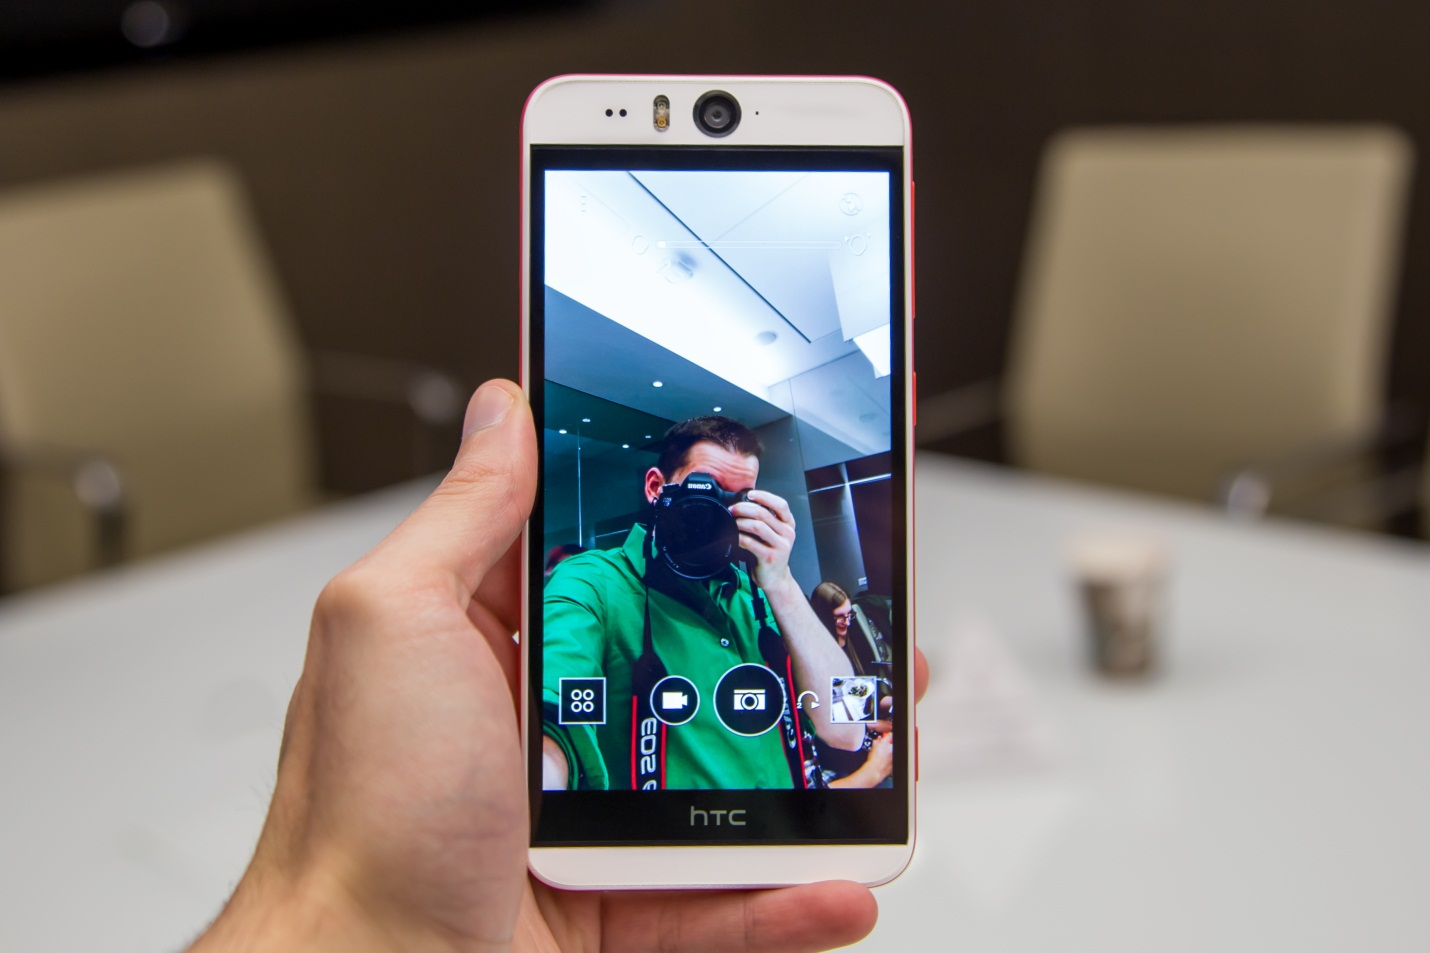 htc-desire-eye-camera-truoc